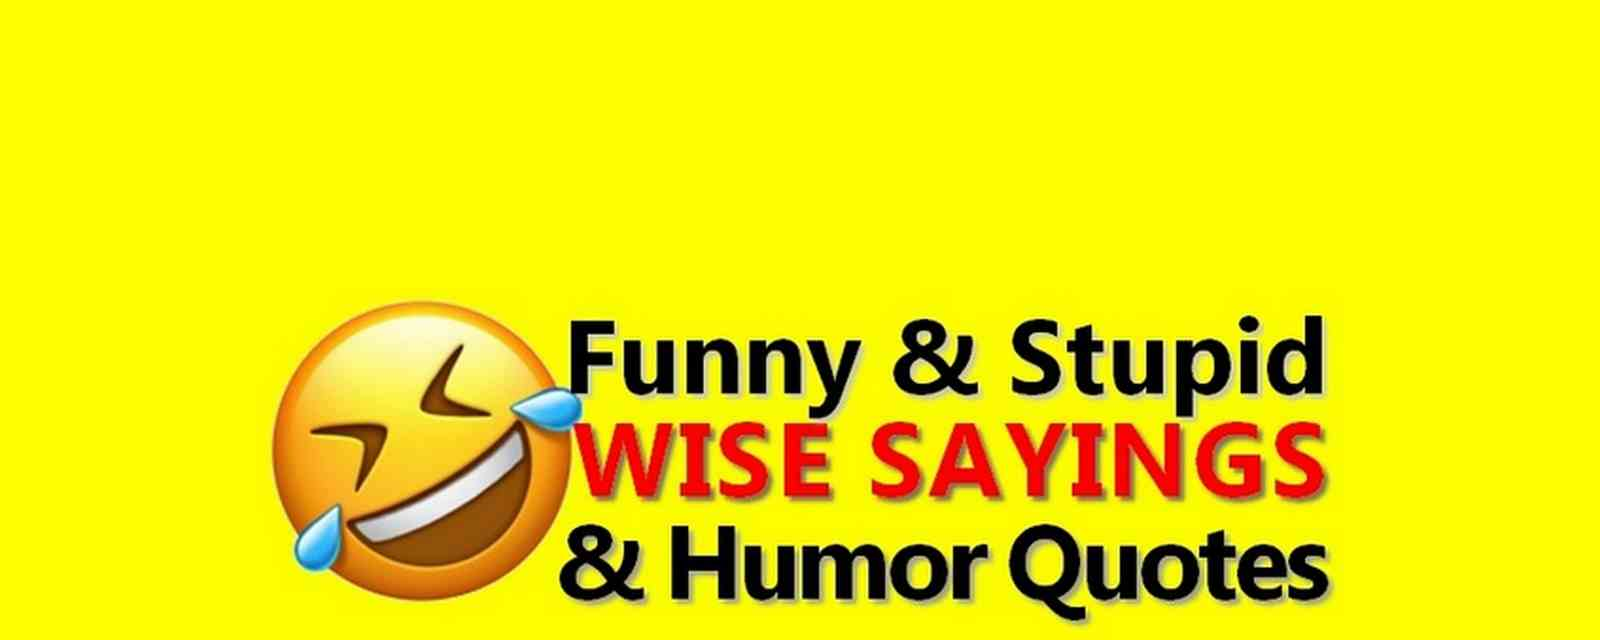 Funny Quotes Humor Sayings